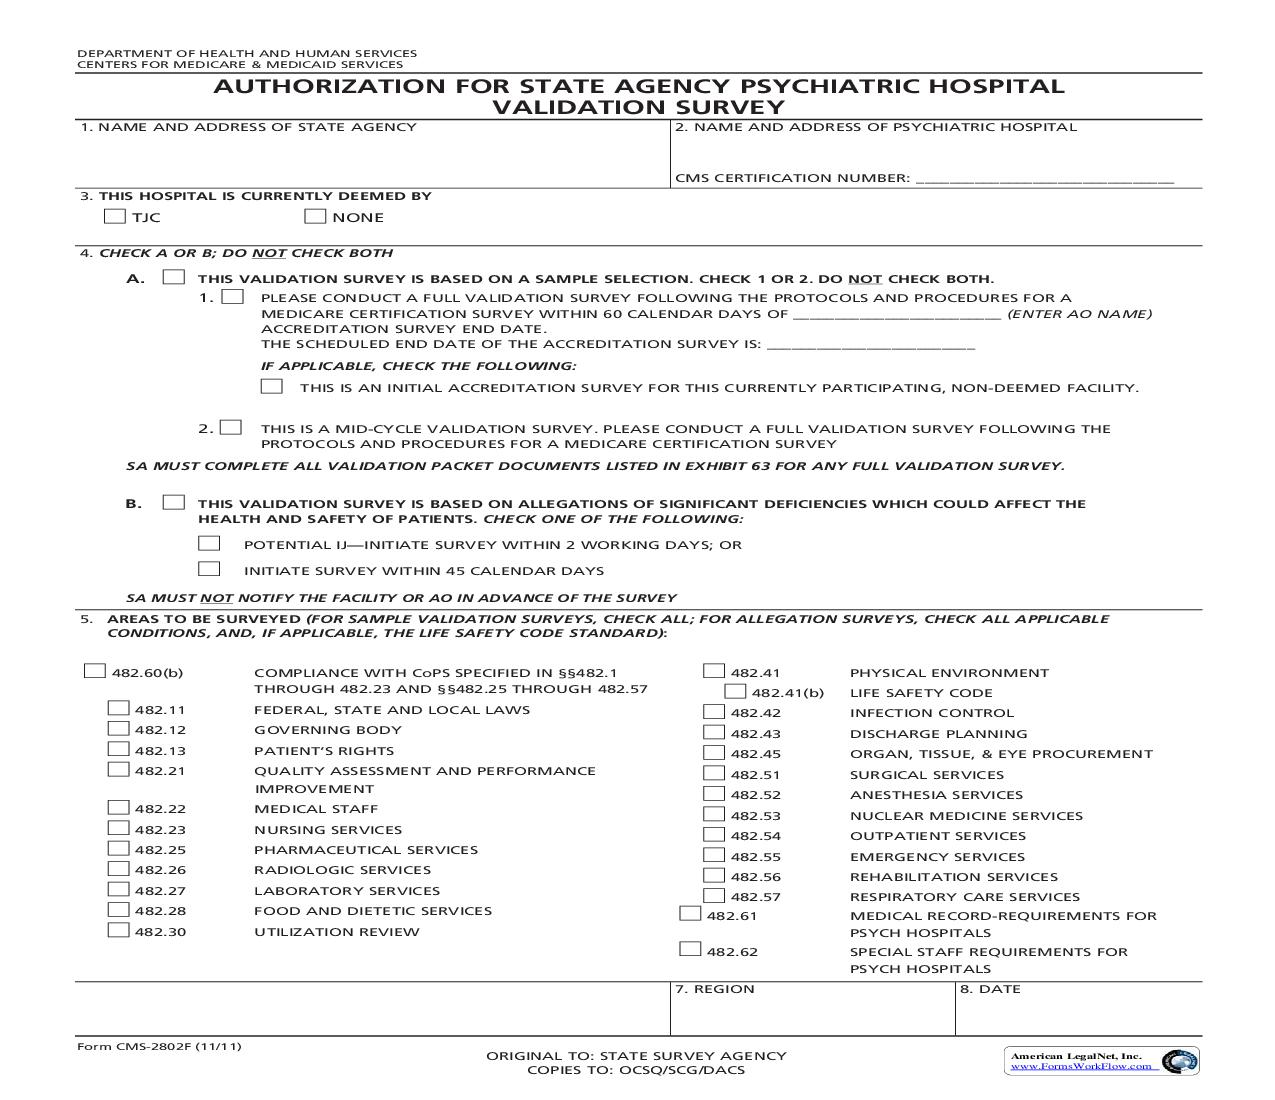 Authorization For State Agency Psychiatric Hospitall Validation Survey {CMS-2802F} | Pdf Fpdf Doc Docx | Official Federal Forms